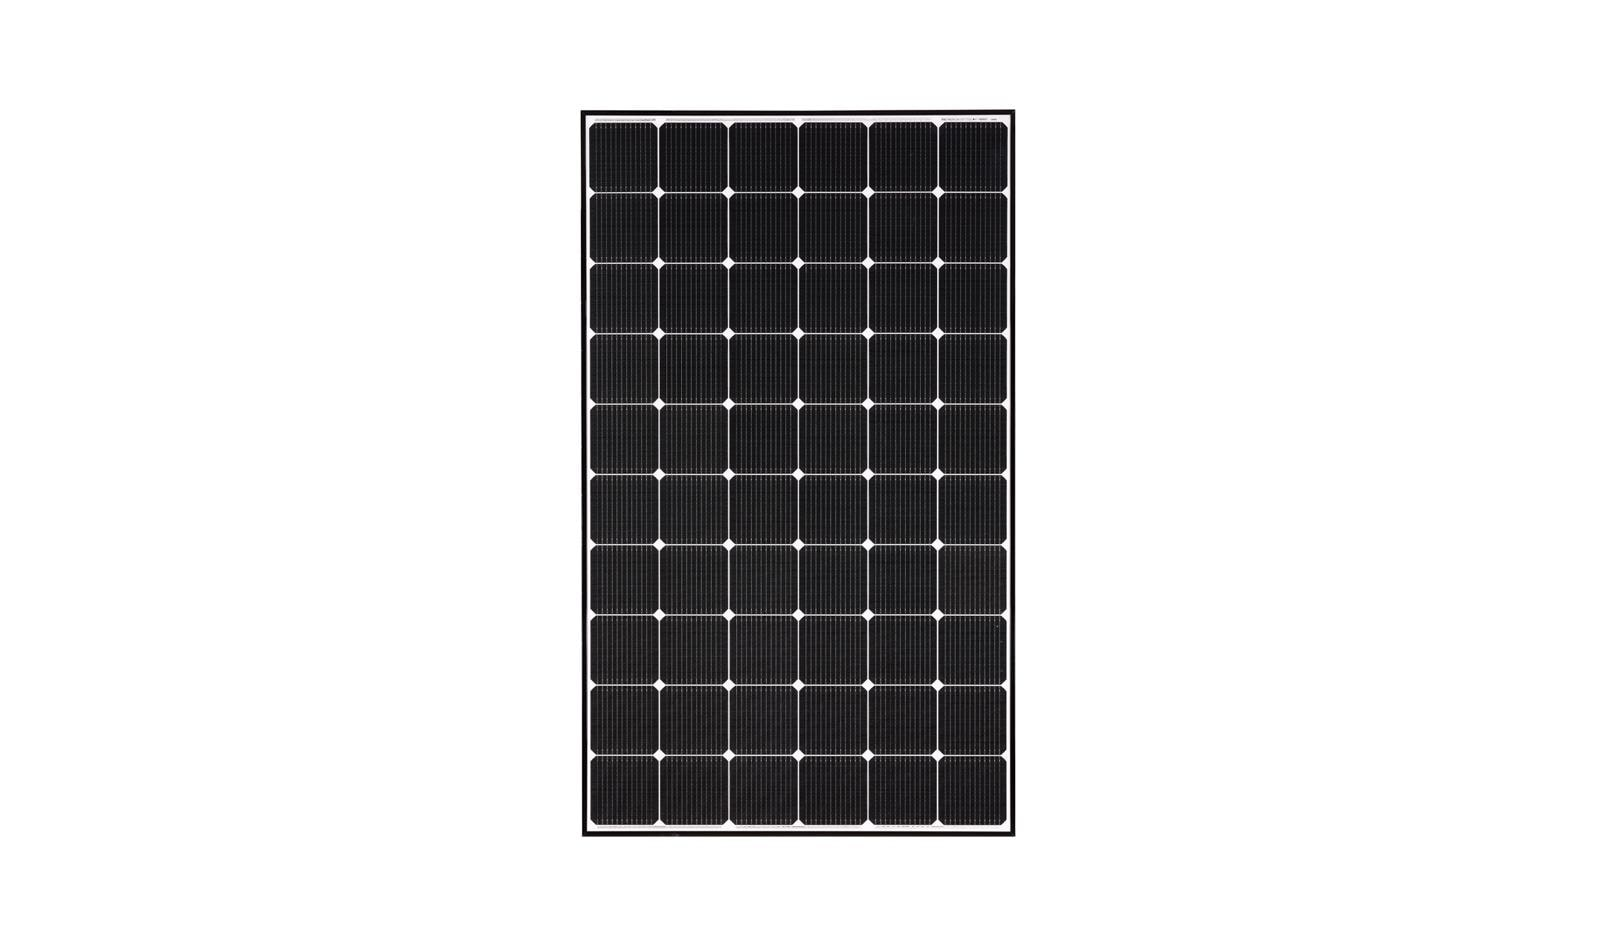 Lg330e1c A5 Lg Neon2 Ace Module Forward Energy Gridready In Parallel Wiring Solar Panels Free Download Diagrams Products Usa